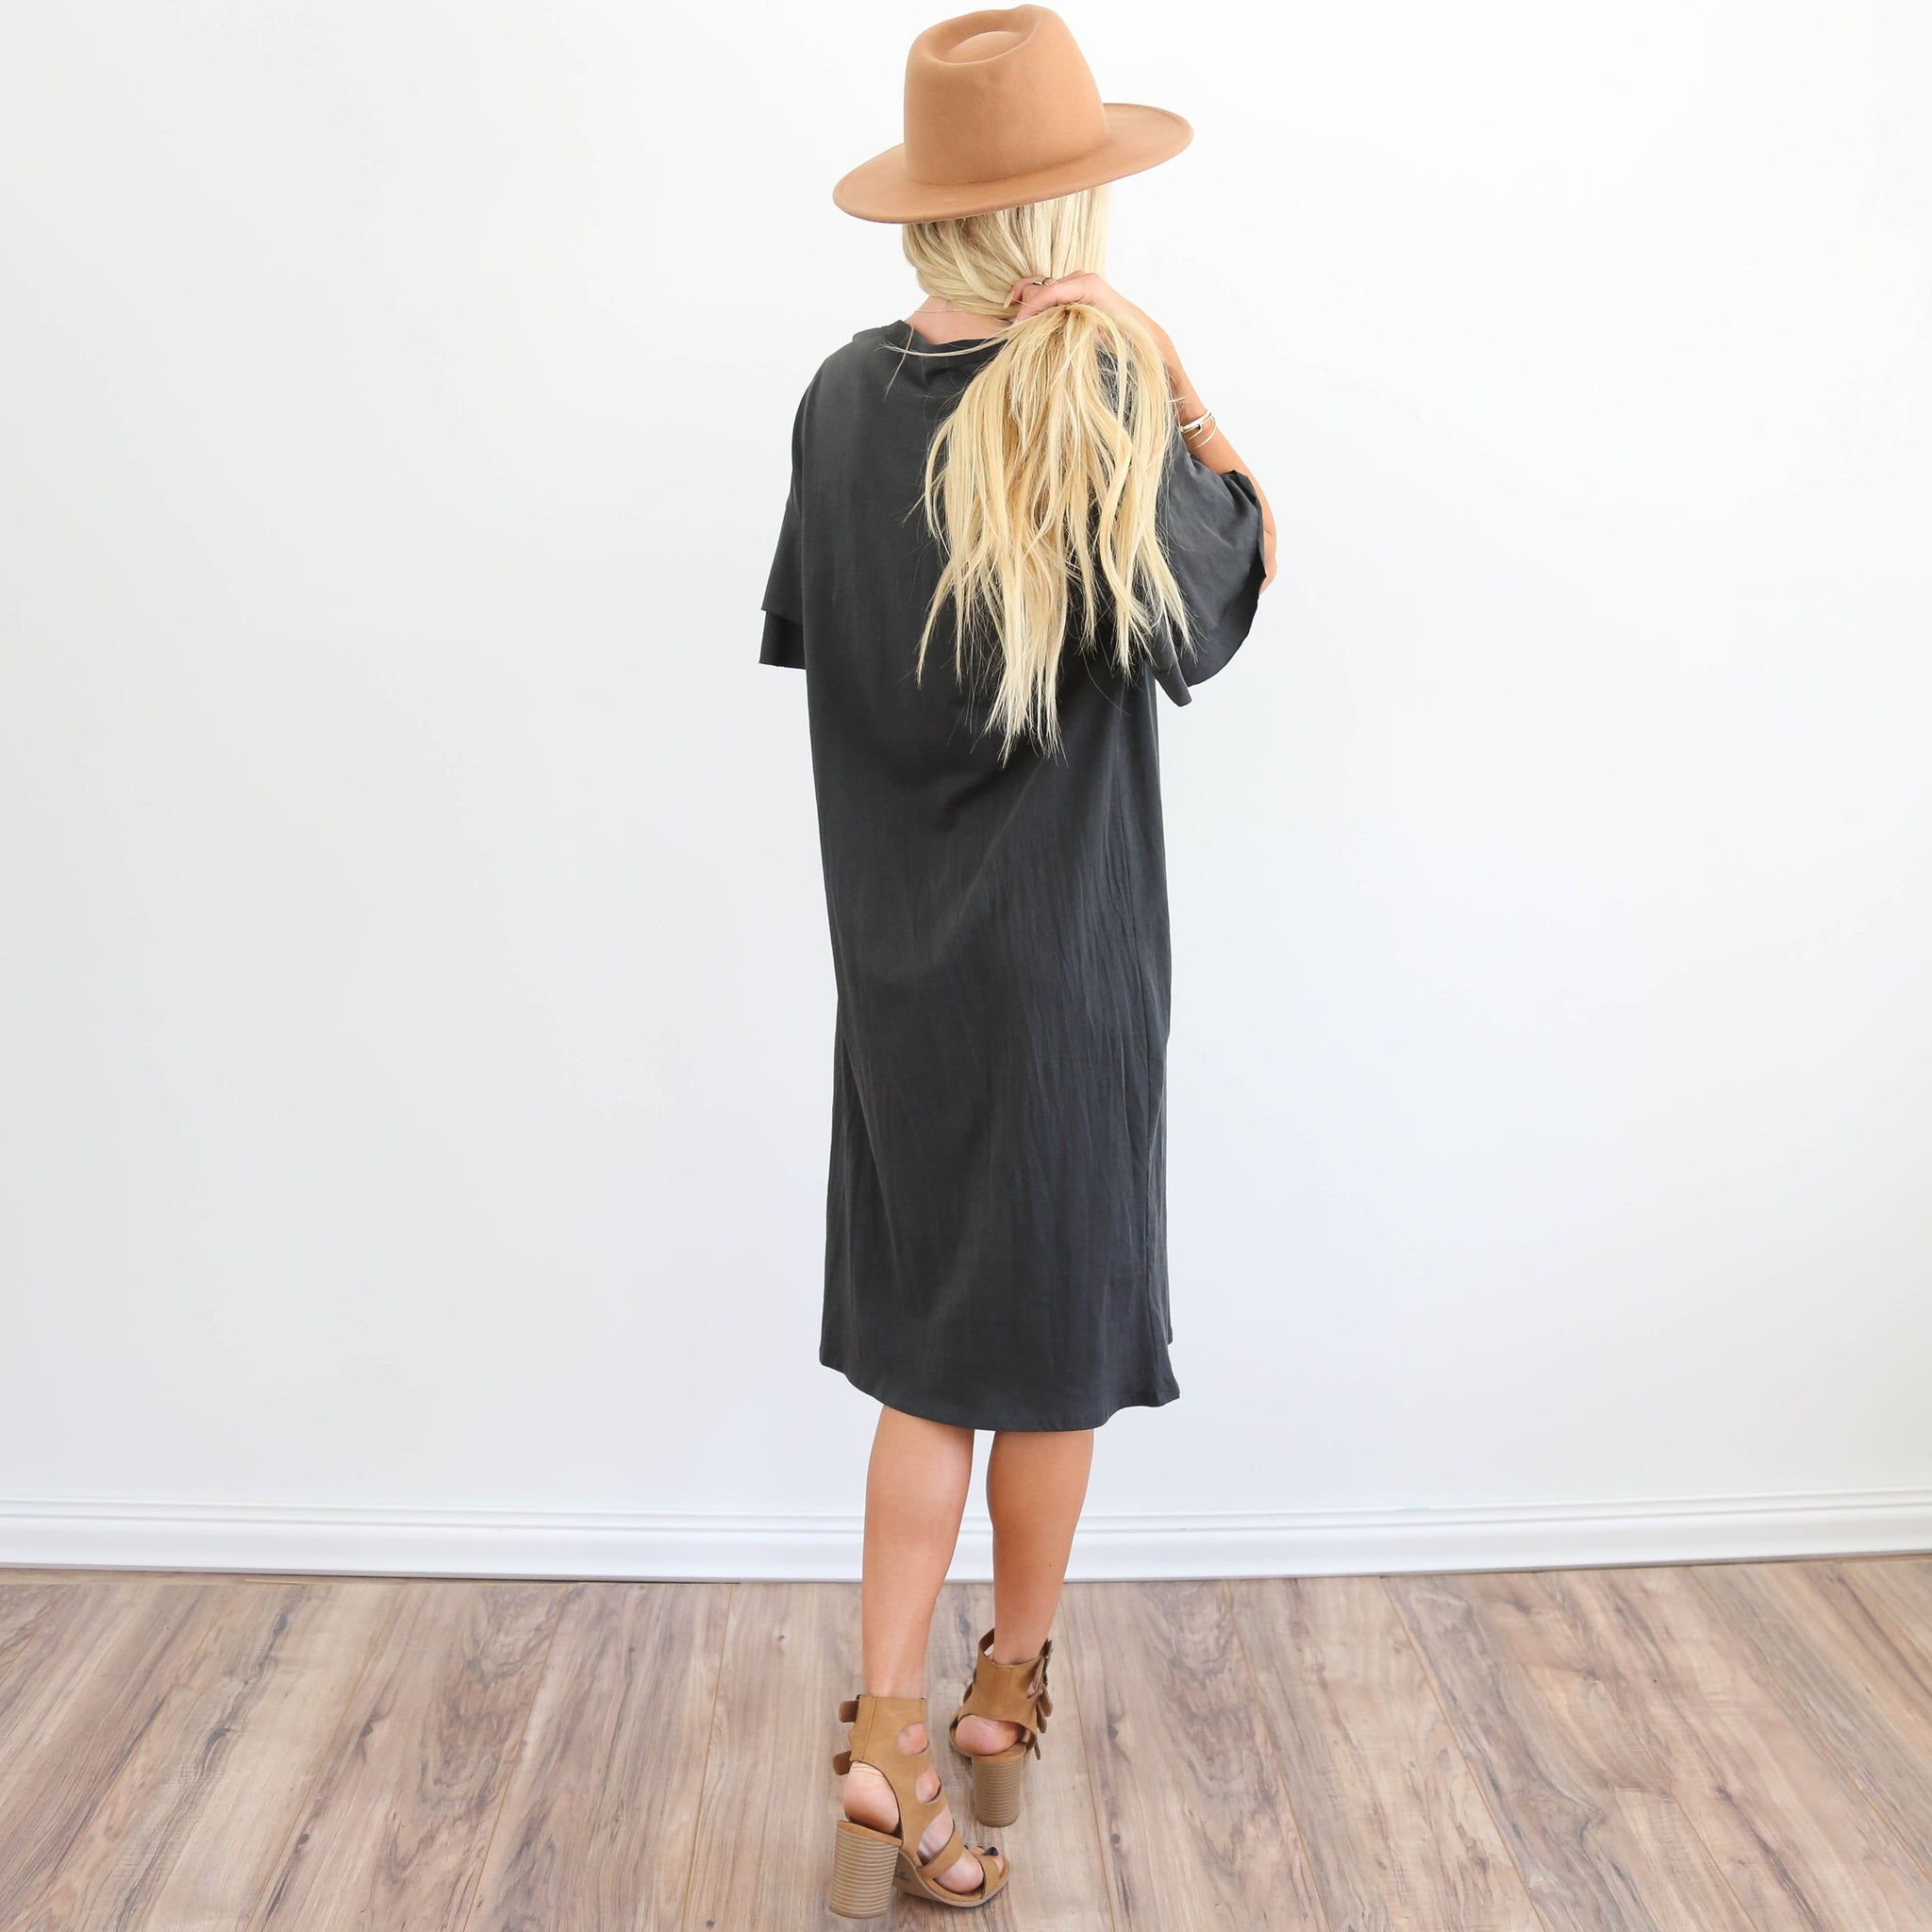 S & Co. Calina Ruffle Dress in Black